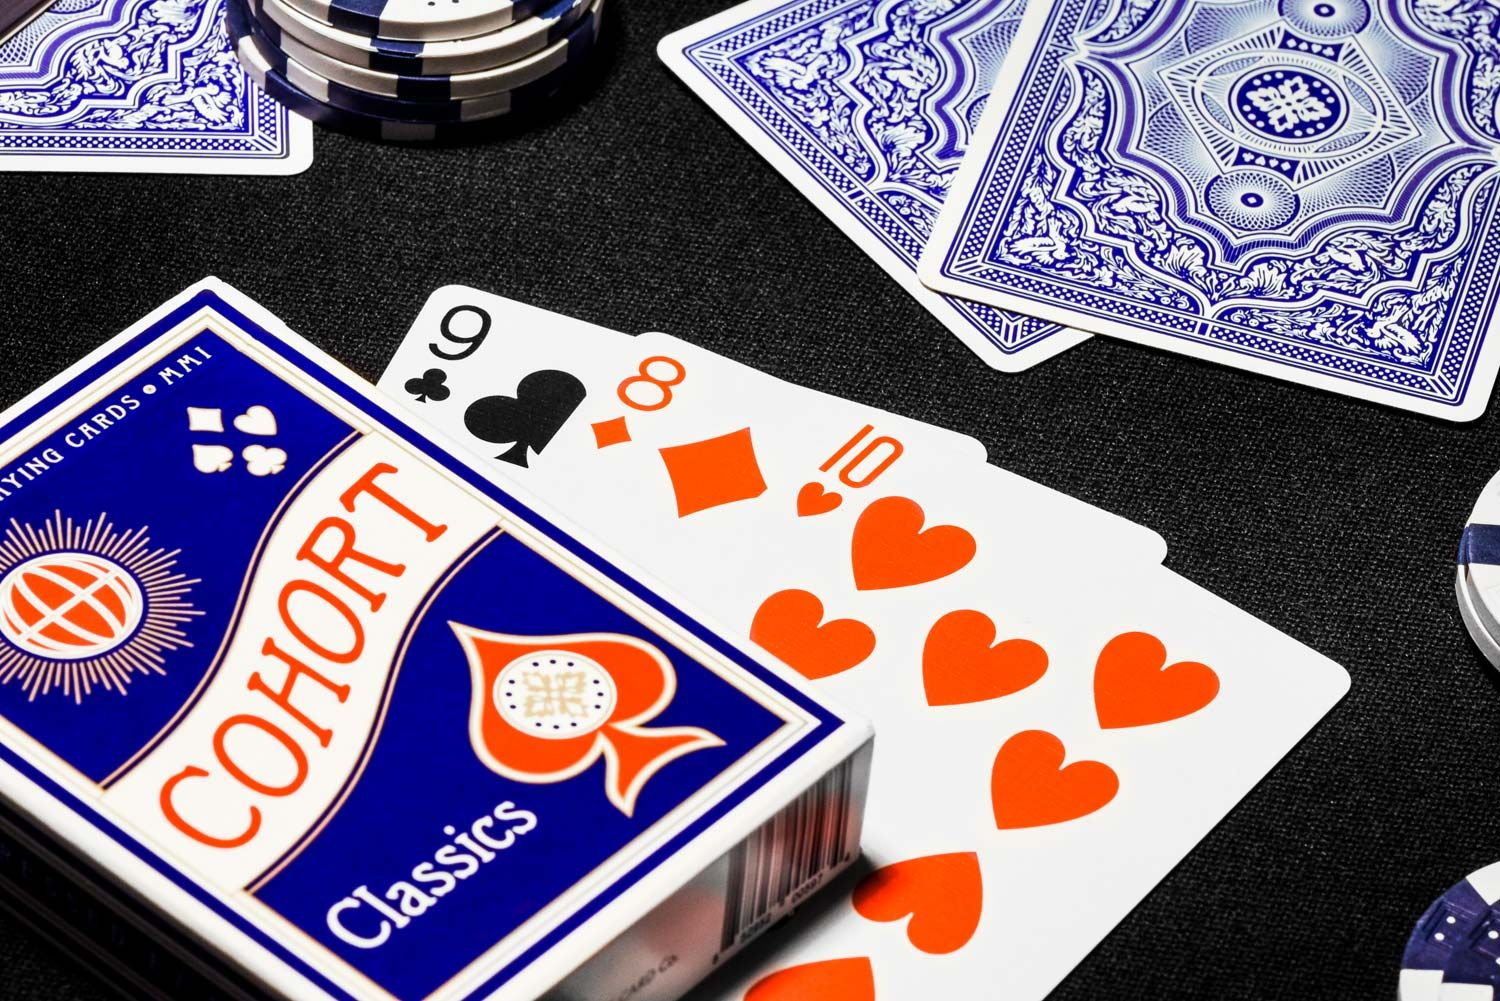 How to buy cheating playing cards